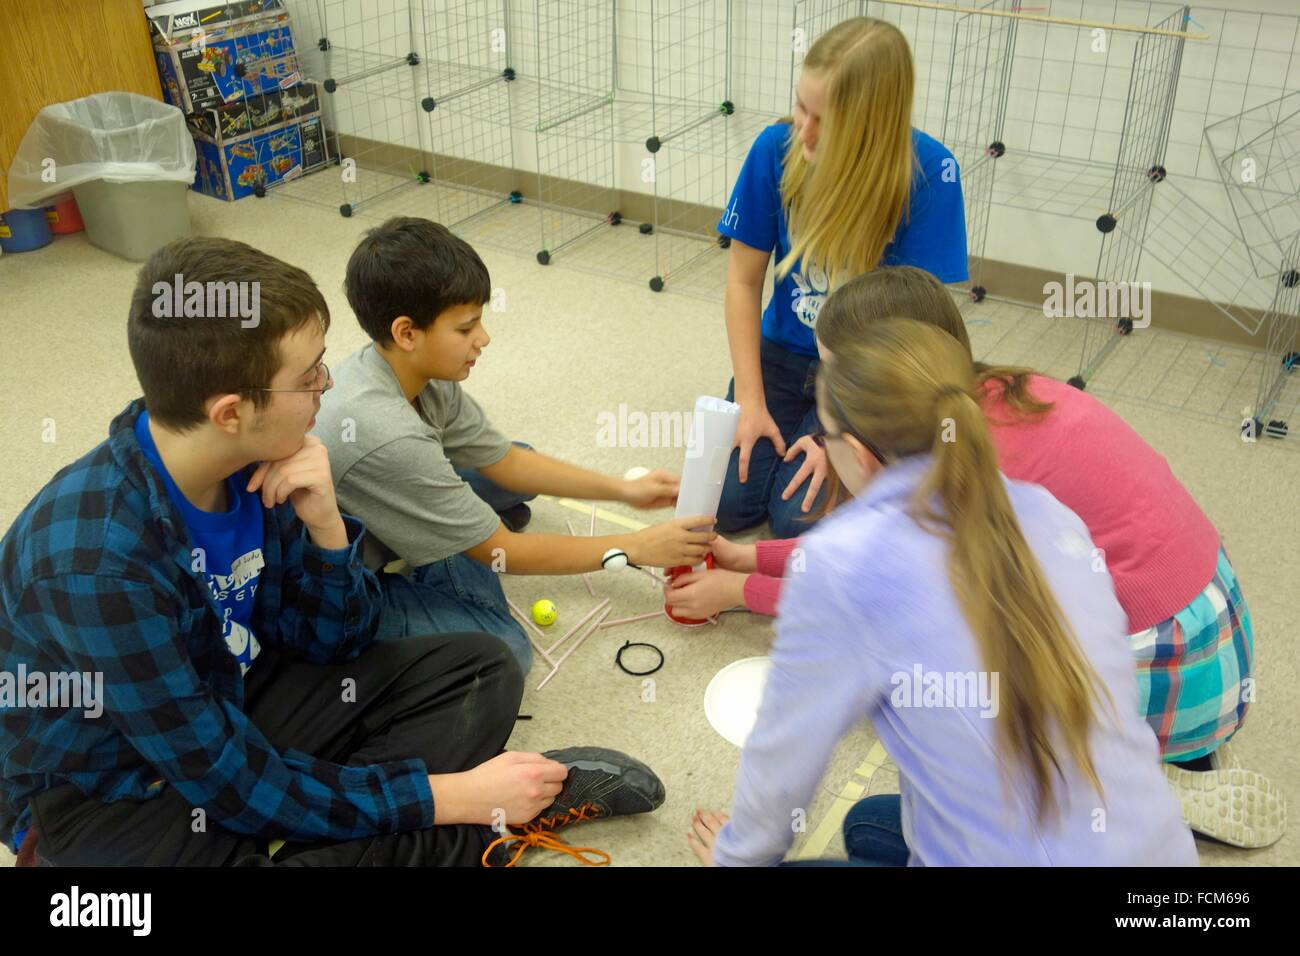 Teenagers Solving Spontaneous Problem, Wellsville, New York, United States. - Stock Image